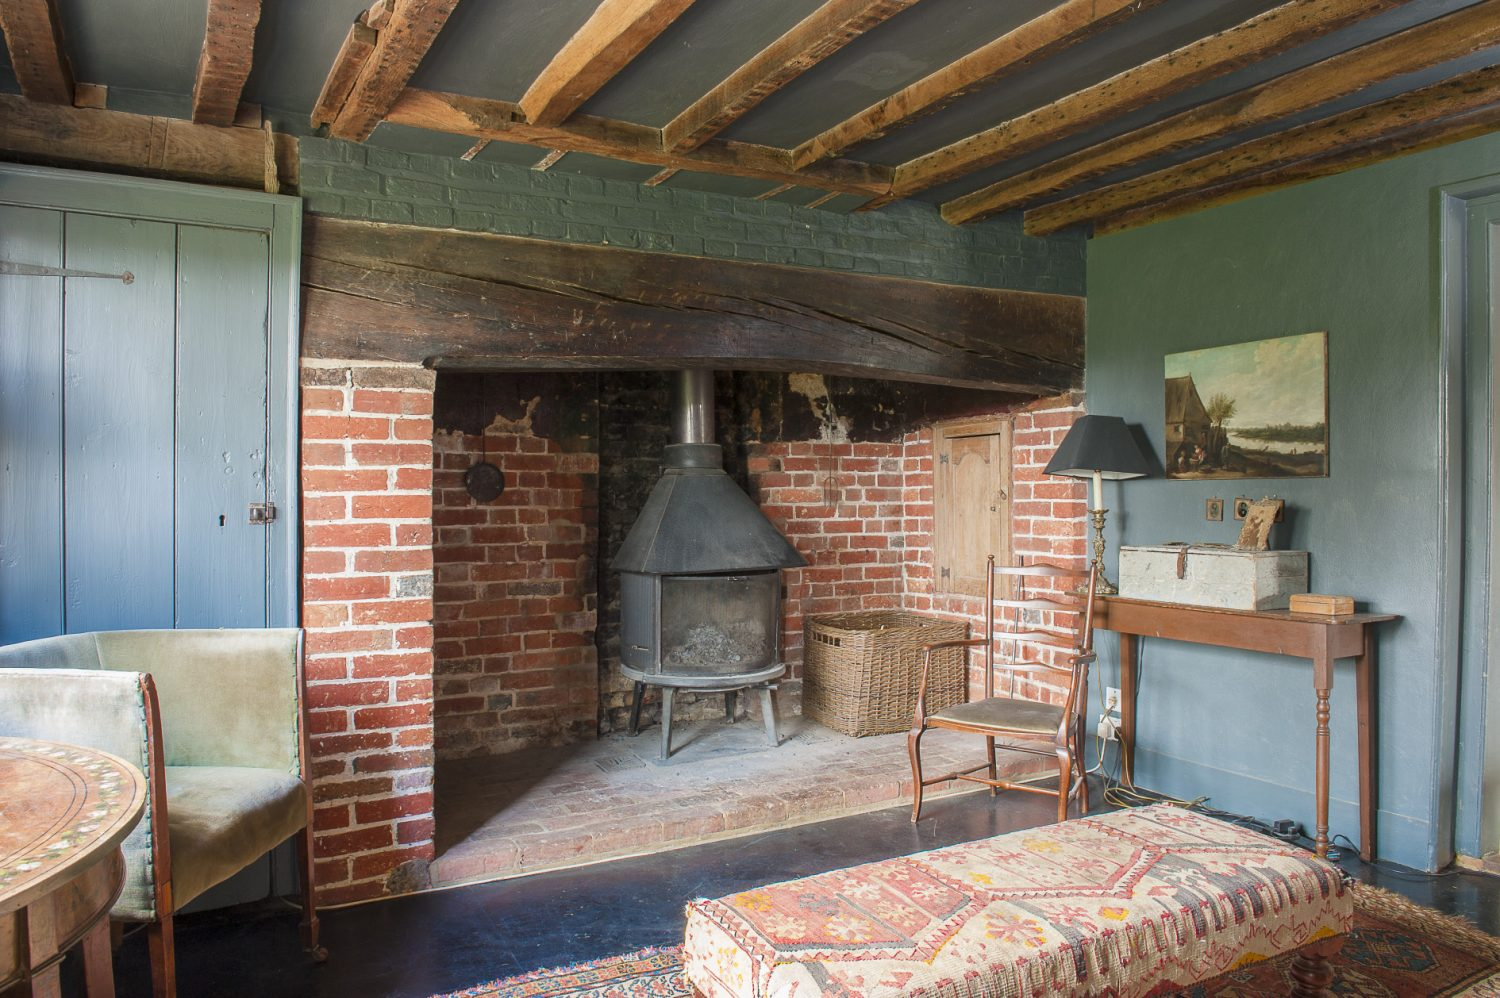 The second sitting room features painted hardwood floors and the walls and woodwork are painted a deep Farrow & Ball Down Pipe grey